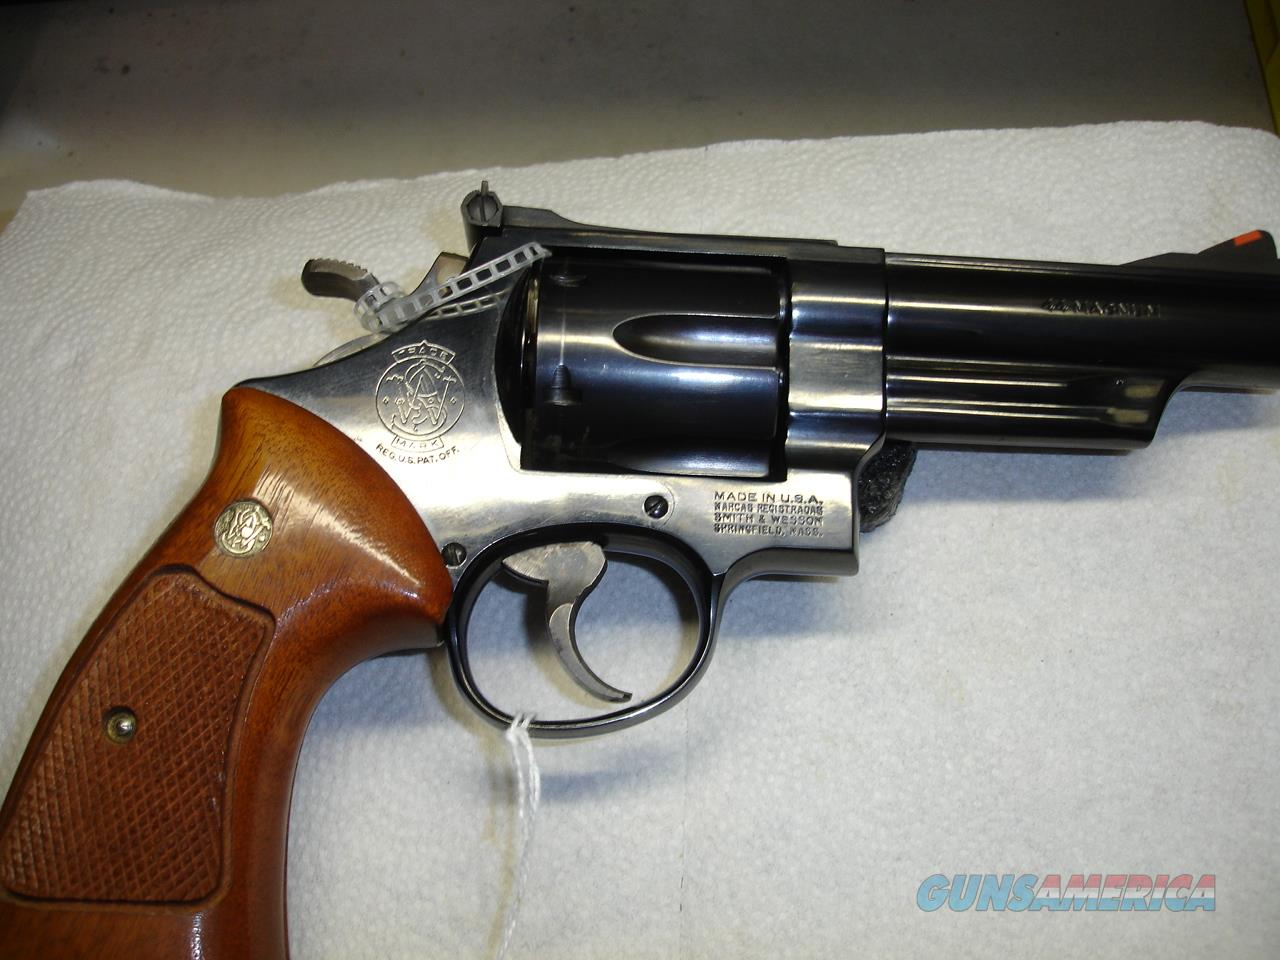 S&W 29-3  Guns > Pistols > Smith & Wesson Revolvers > Full Frame Revolver